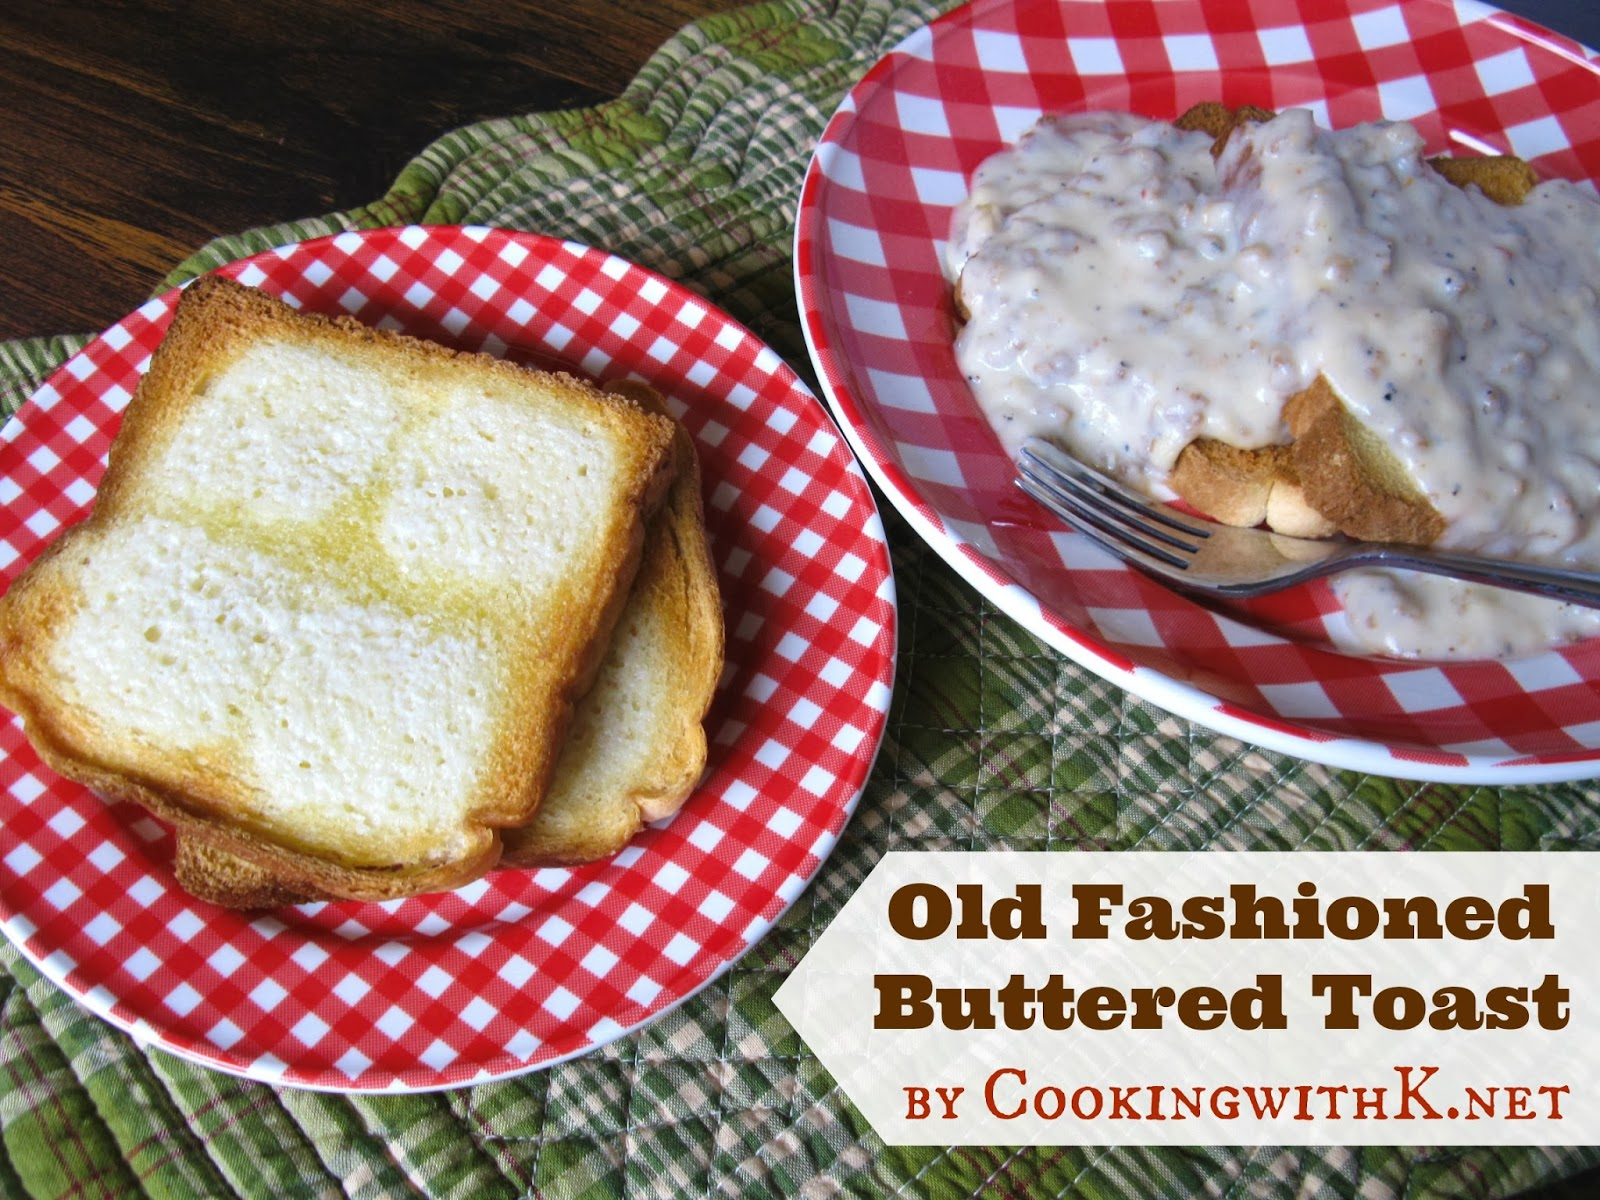 Old Fashioned Buttered Toast